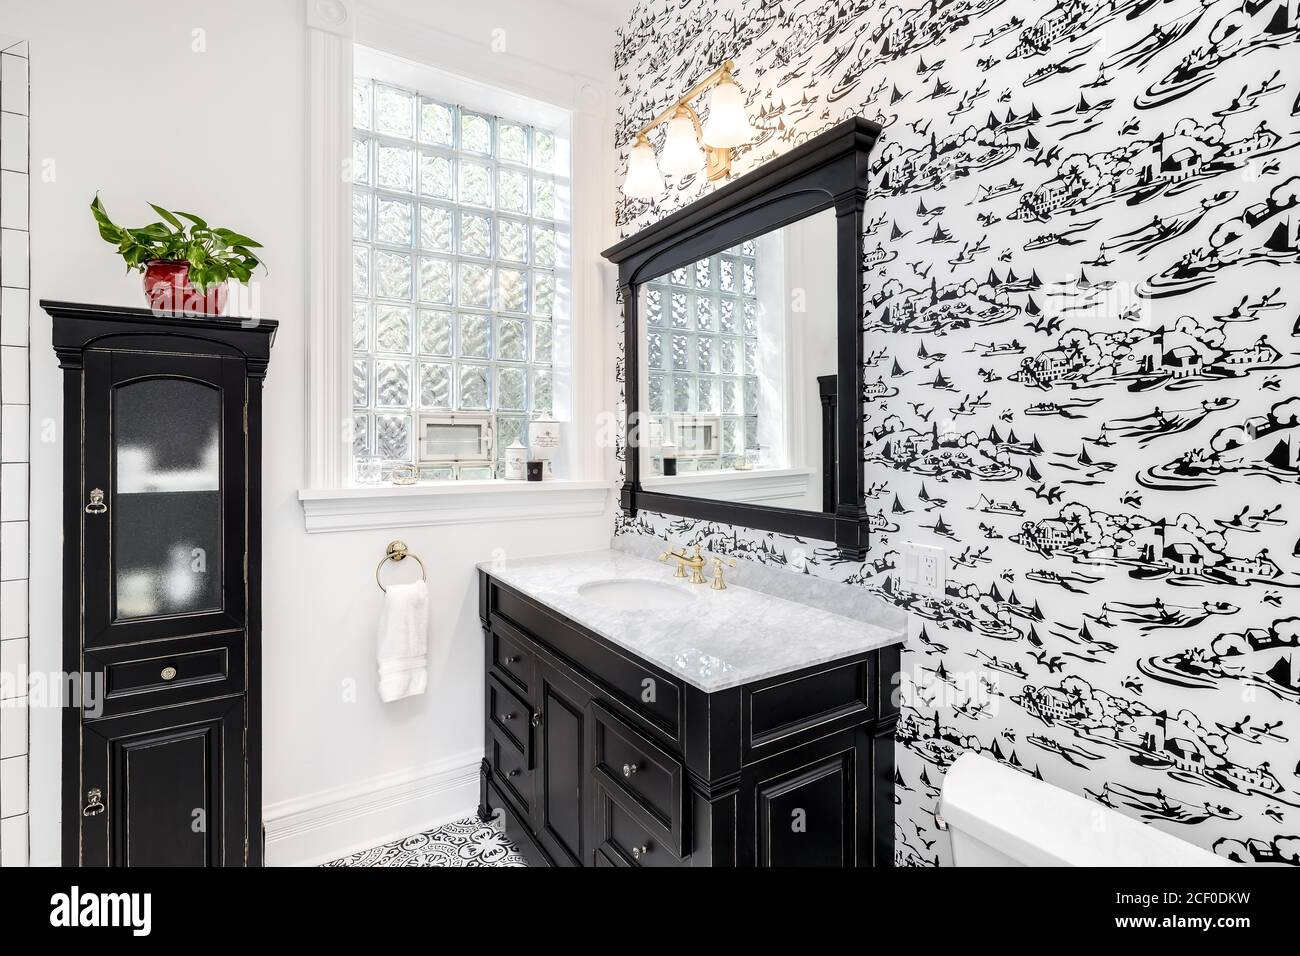 A Renovated Black And White Bathroom With Wallpaper Black Vanity Decorative Tiles On The Floor And Subway Tiles In The Shower Stock Photo Alamy